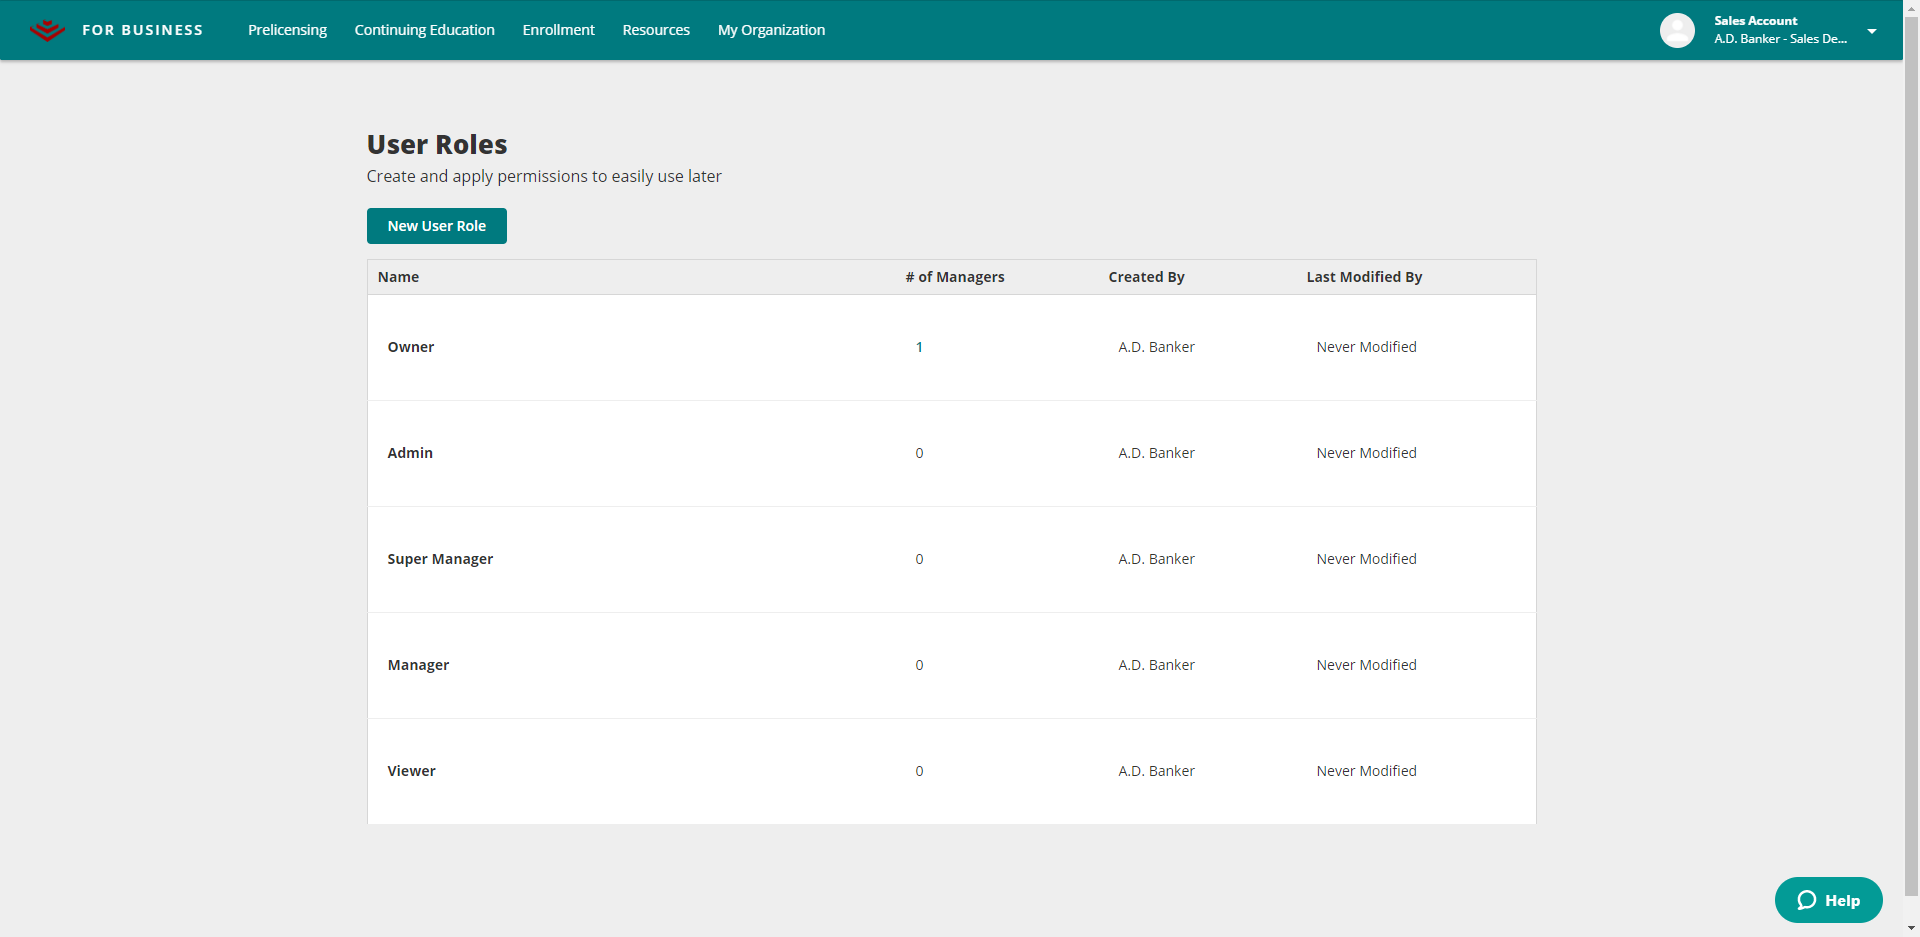 Custom User Roles Page in A.D. Banker for Business